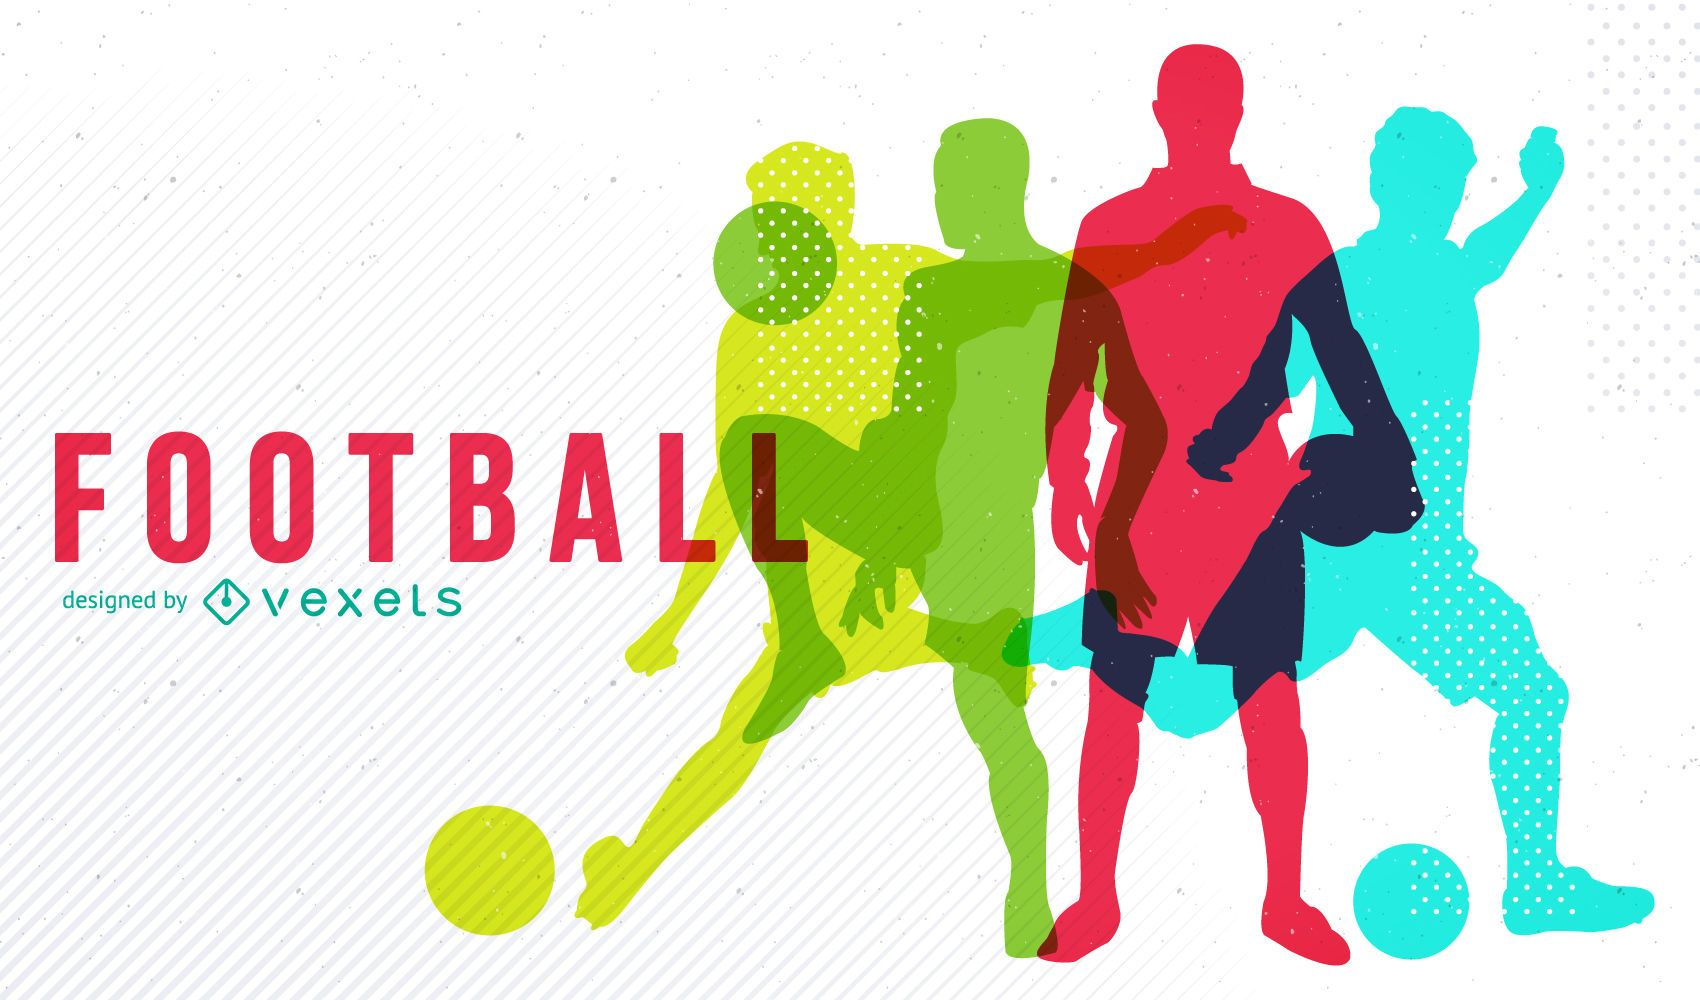 Football design with colorful silhouette - Vector download